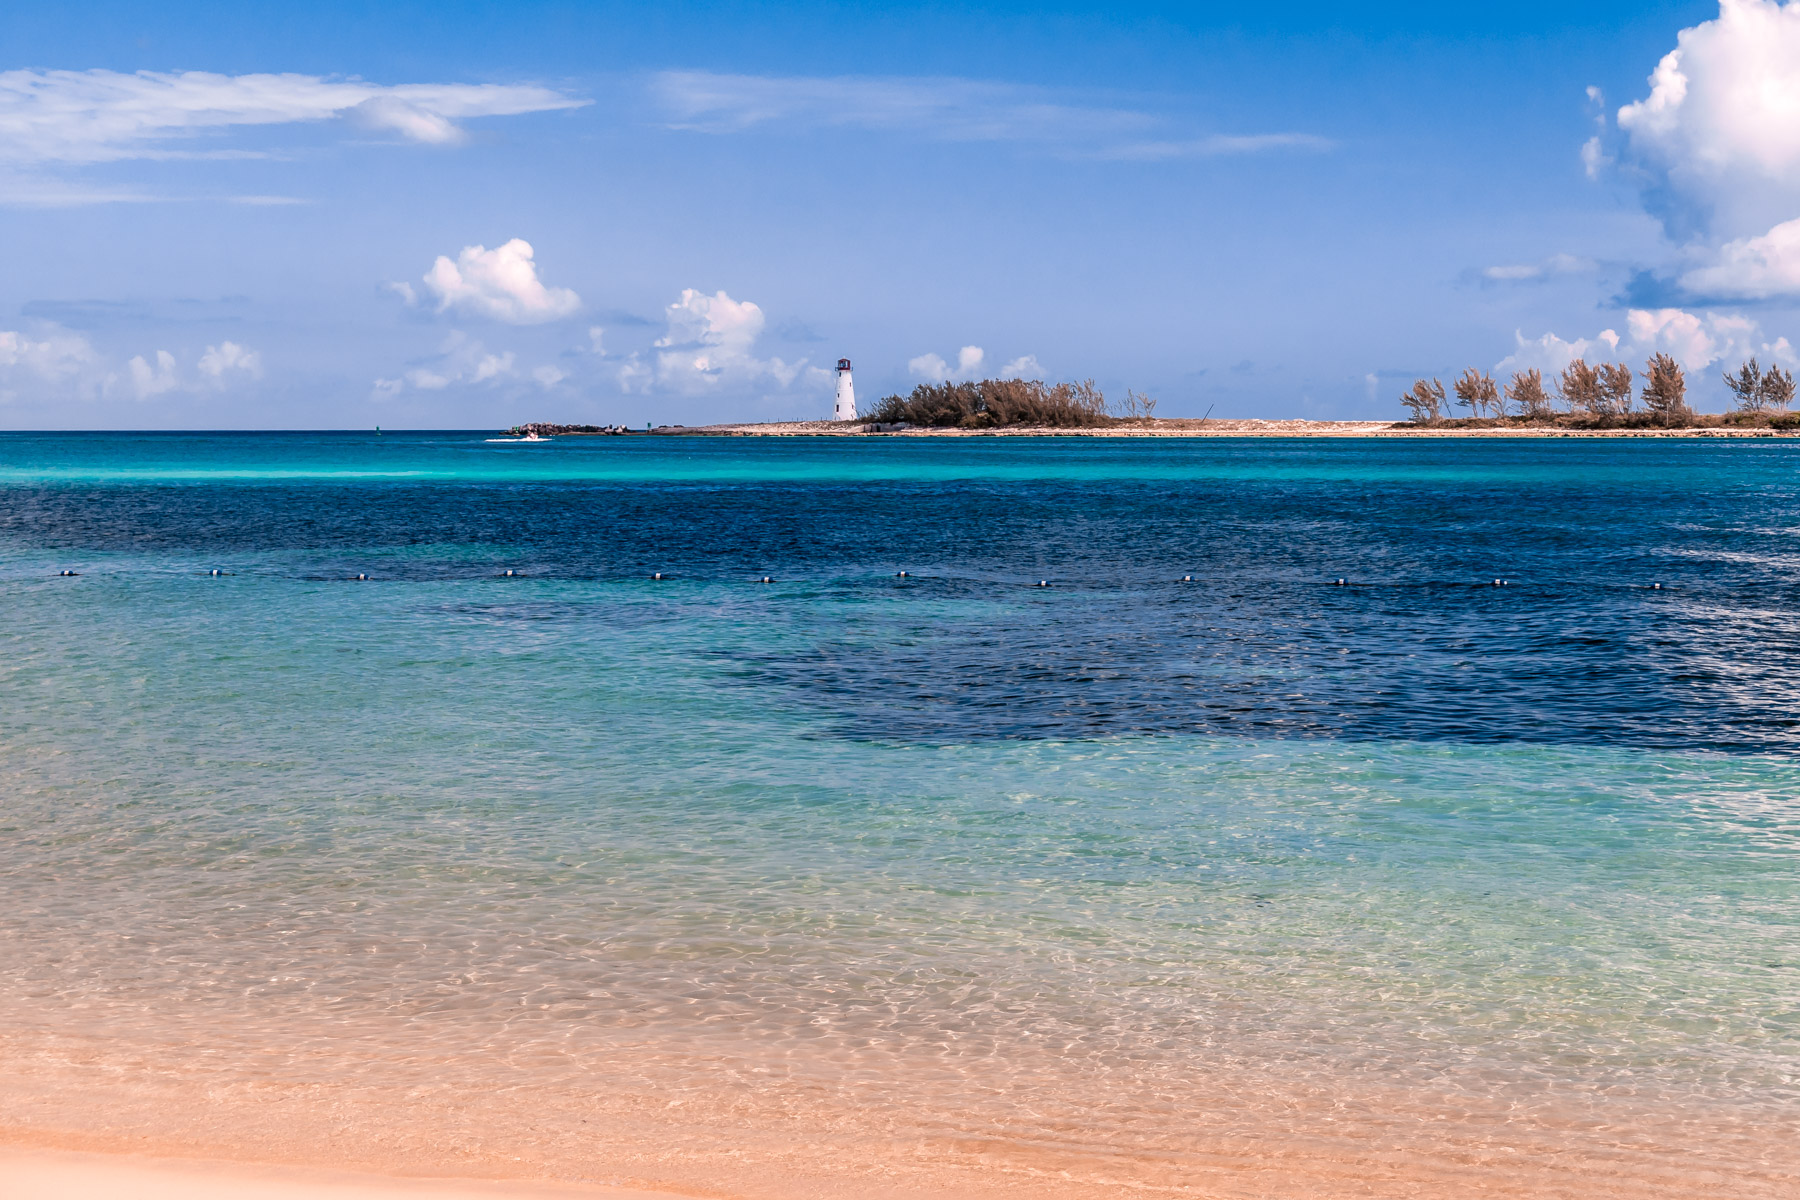 The Bahamas'Nassau Harbour Lighthouse sits abandoned on the western end of Colonial Beach.